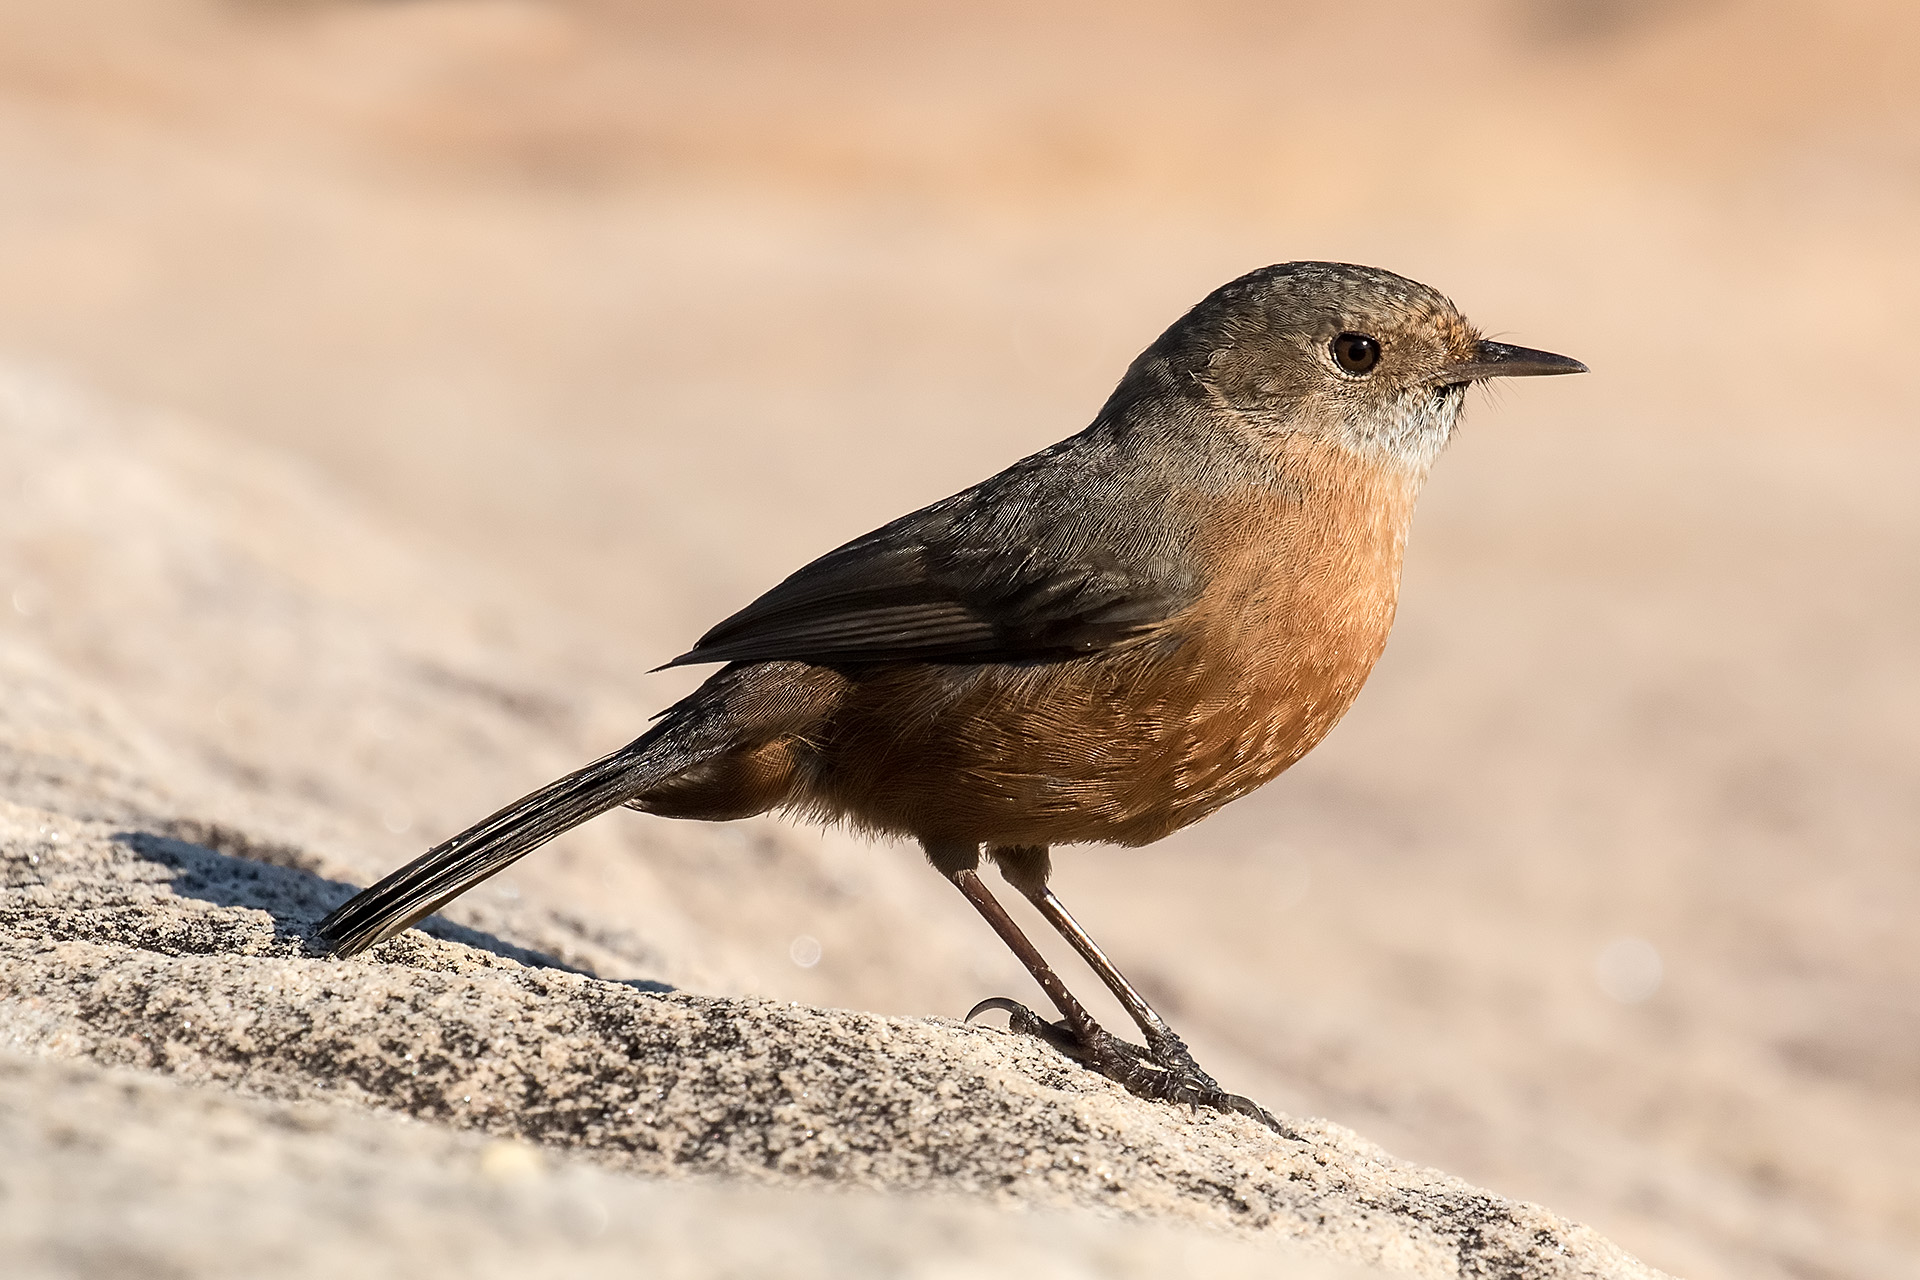 Rock Warbler perched on sandstone rock